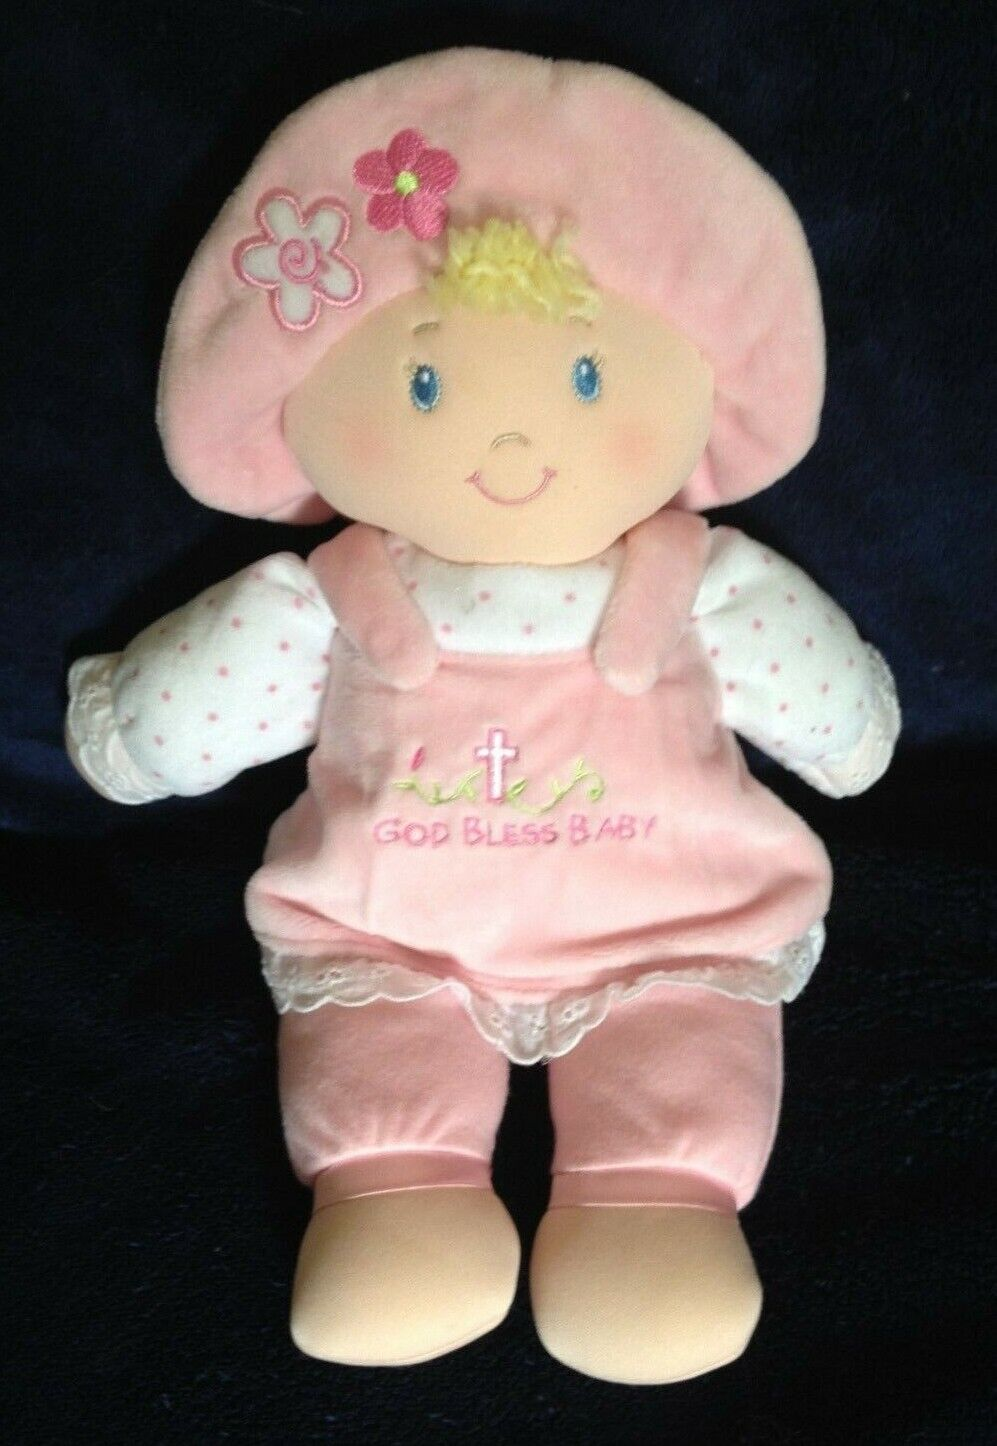 Gund God Bless Baby Doll Soft Pink Plush Girl Dolly 12  - $22.99